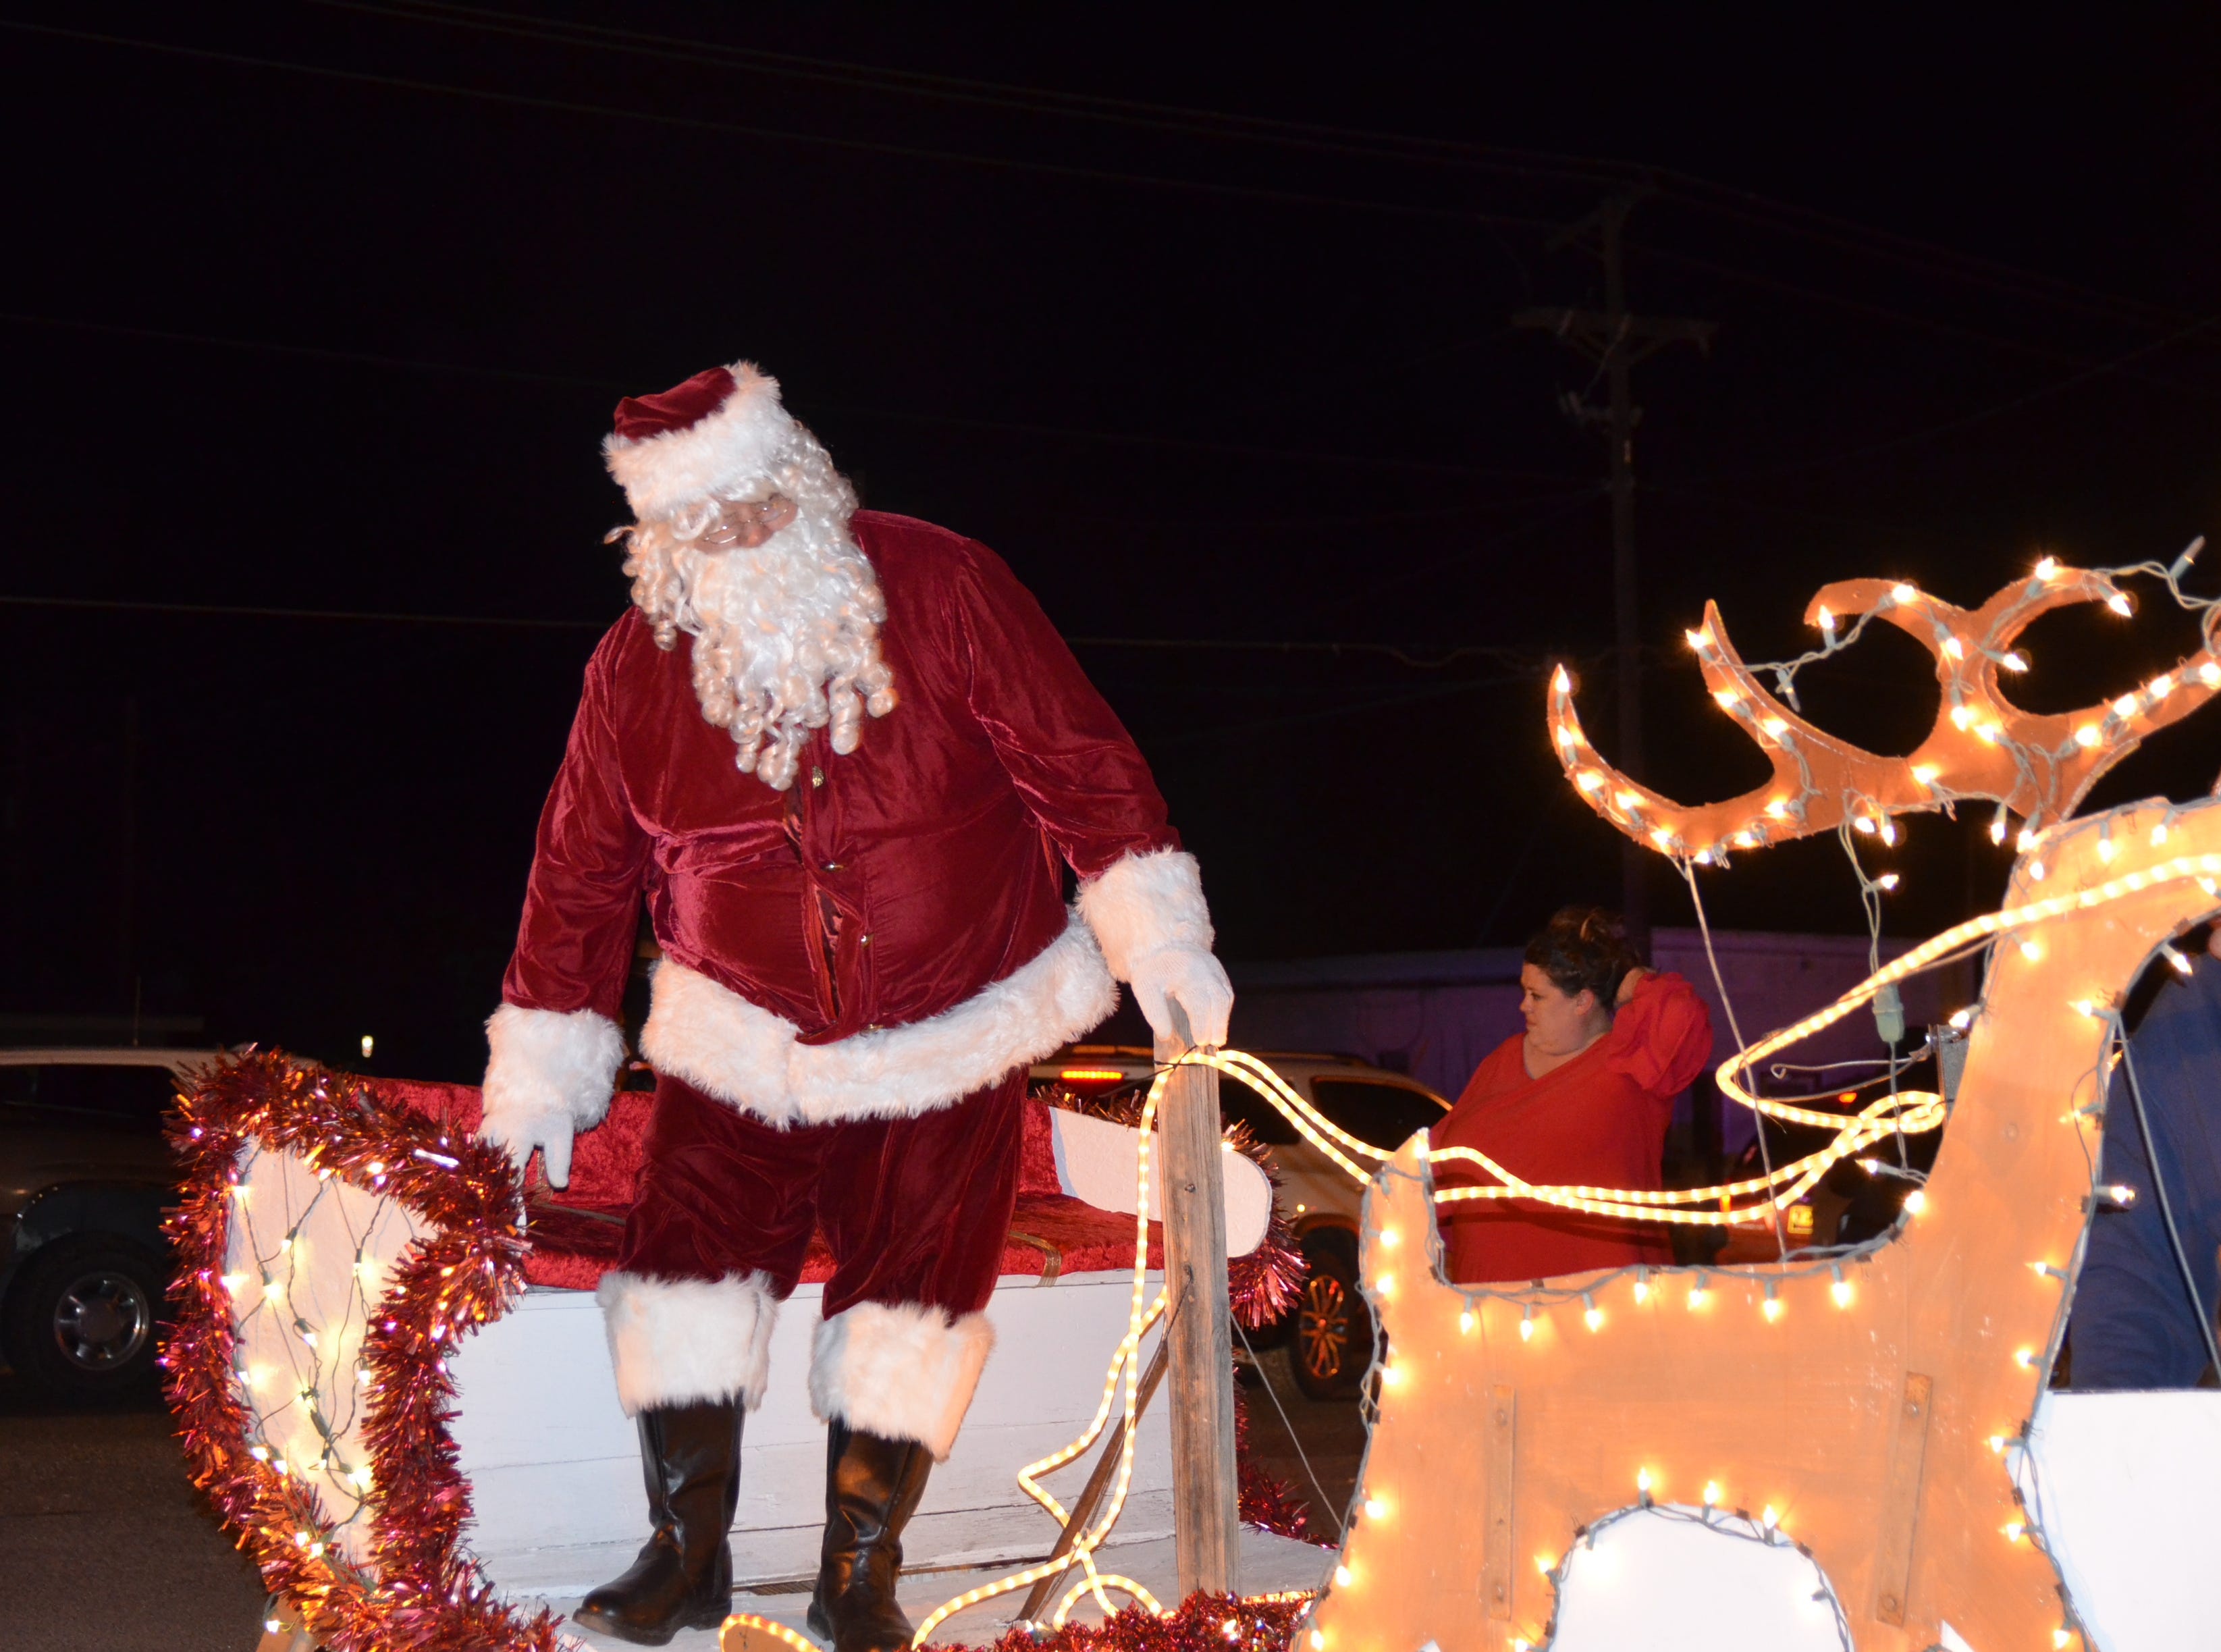 Santa Claus hopping off of his sleigh to meet with Deming Mayor Benny Jasso, County Chair Commissioner Linda Smrkovsky and Deming MainStreet Executive Director Christie Ann Harvey to do the honors of lighting up the Luna County Christmas tree.